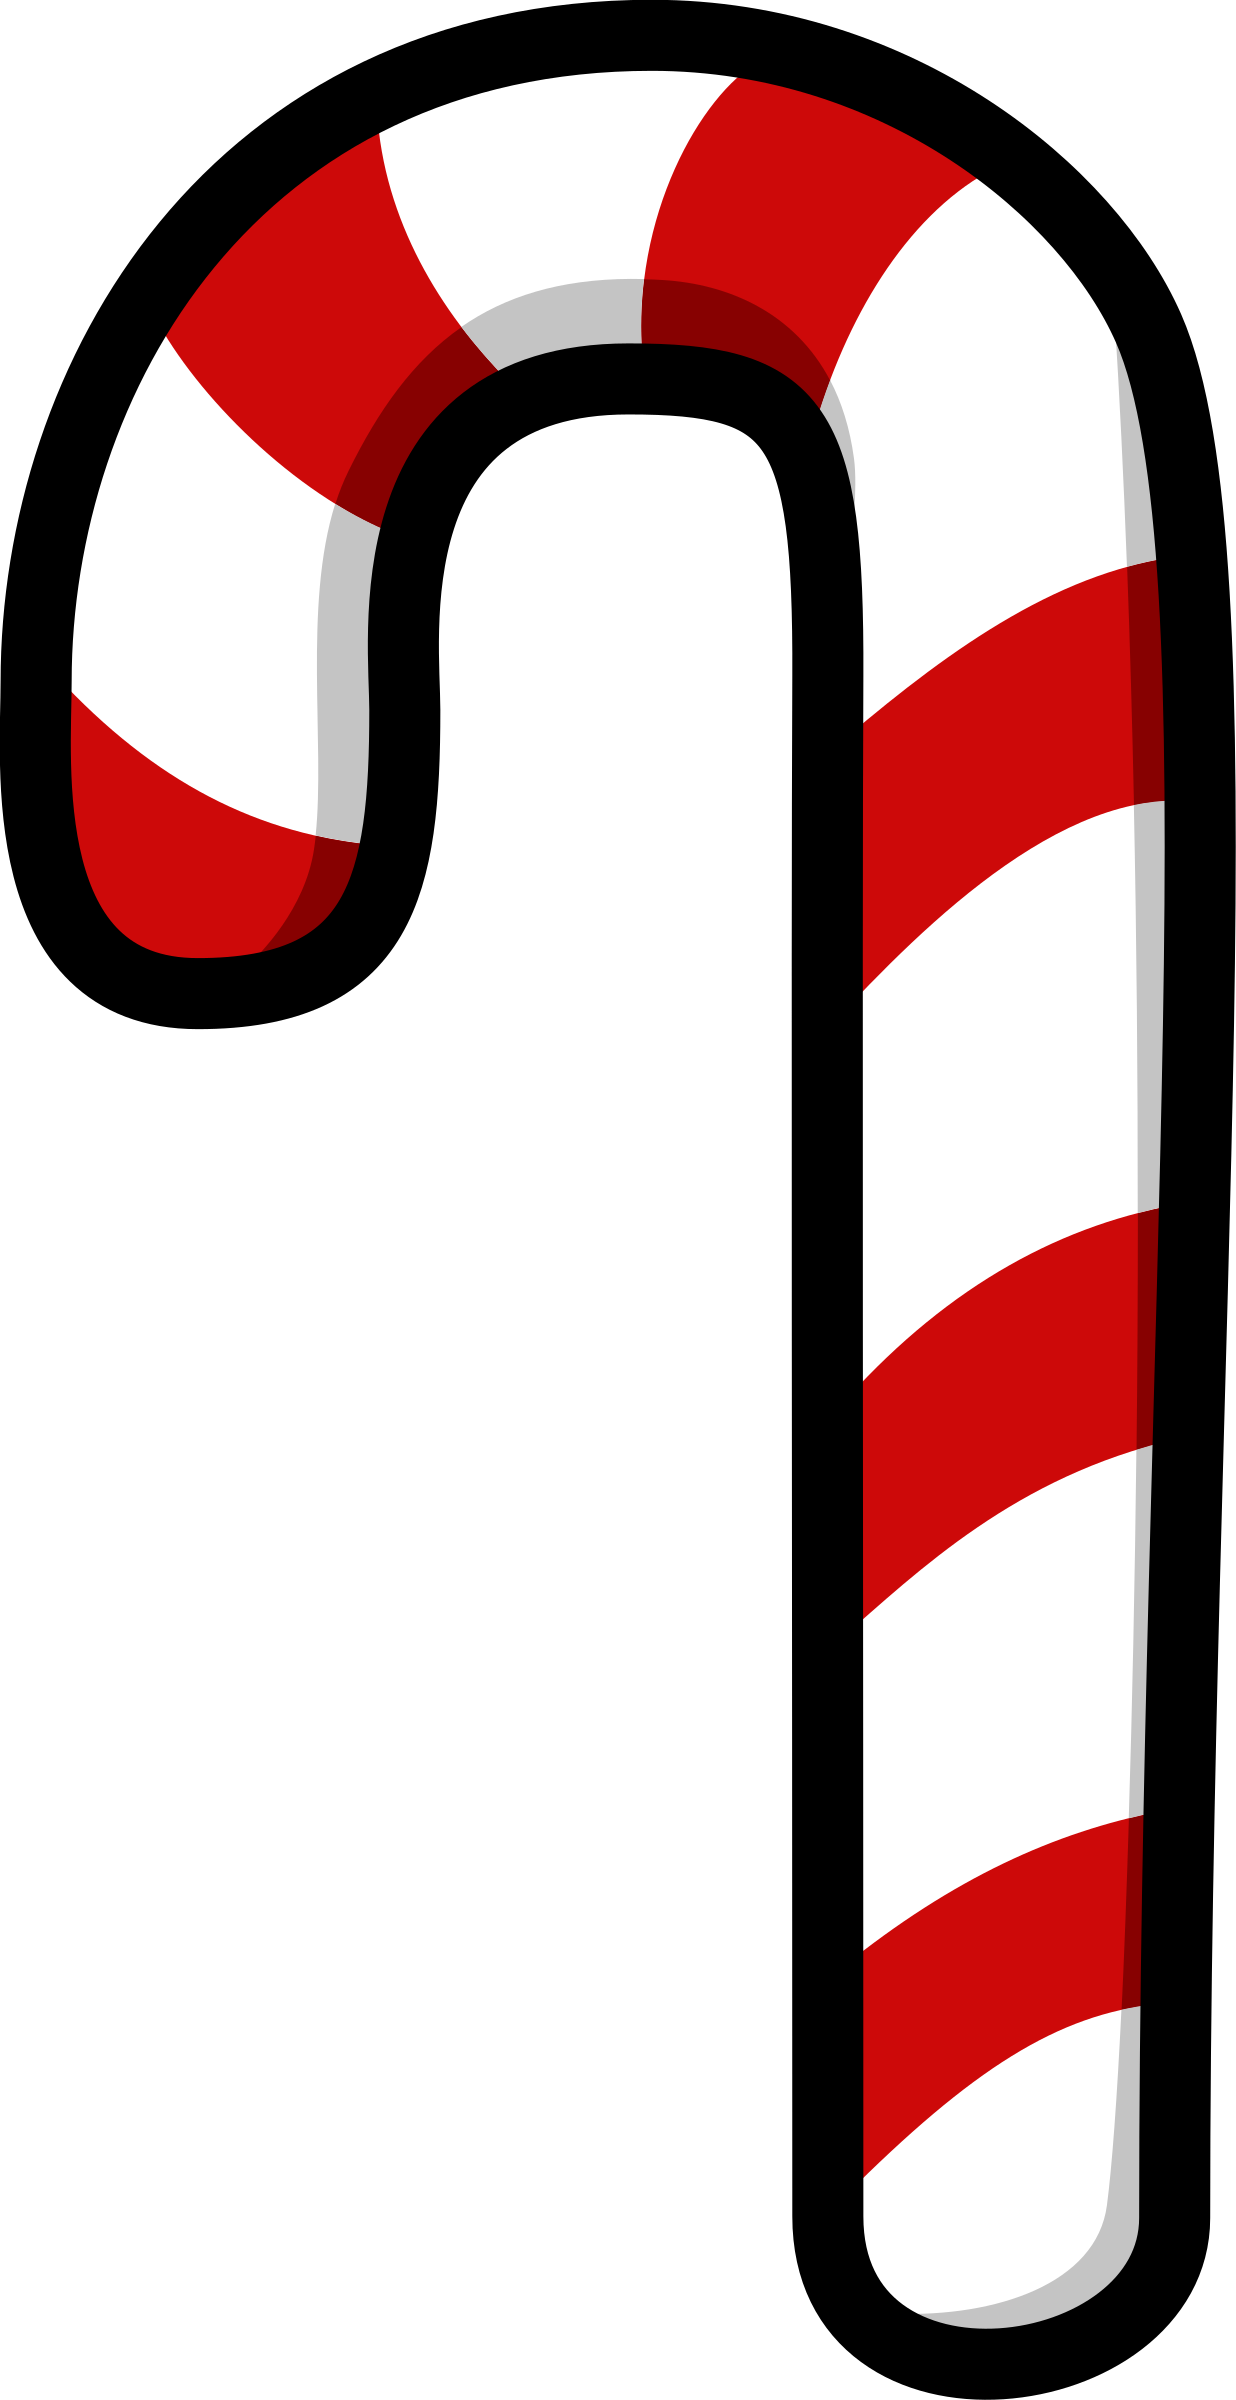 candy cane vector clipart image free stock photo candy cane clip art images candy cane clipart free